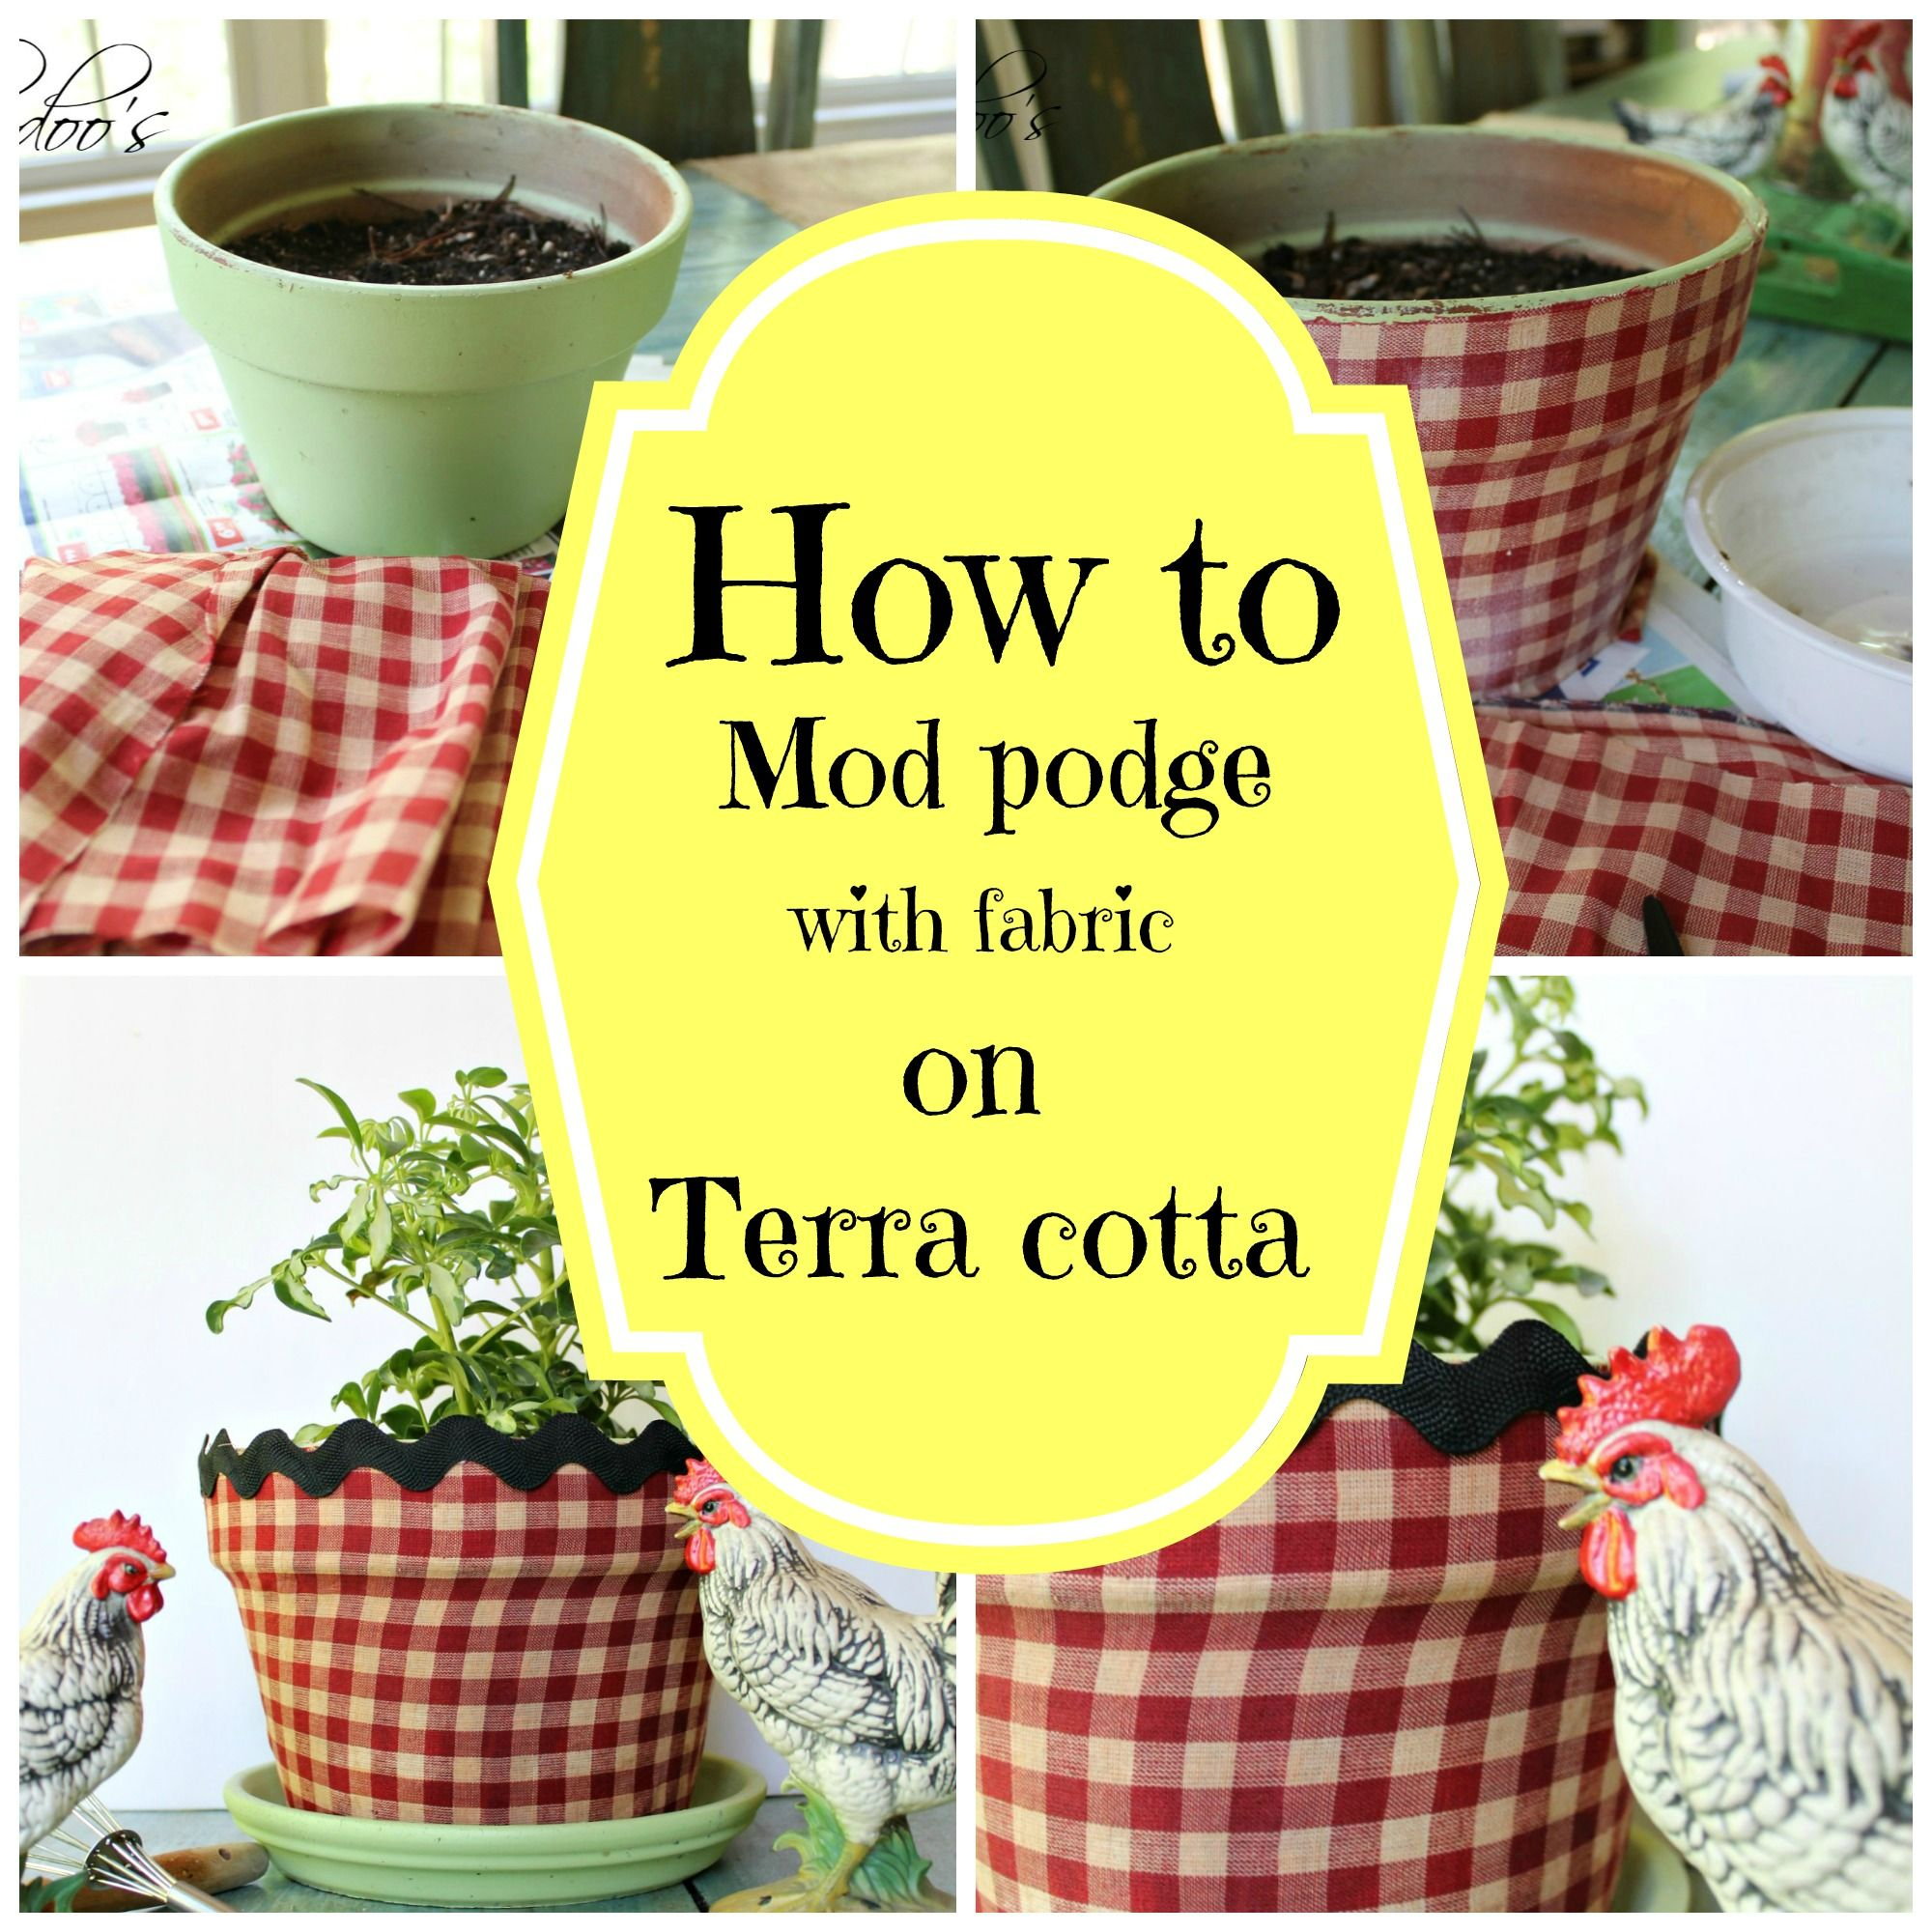 how to mod podge a terra cotta pot with fabric bert pfe blument pfe und m glicherweise. Black Bedroom Furniture Sets. Home Design Ideas